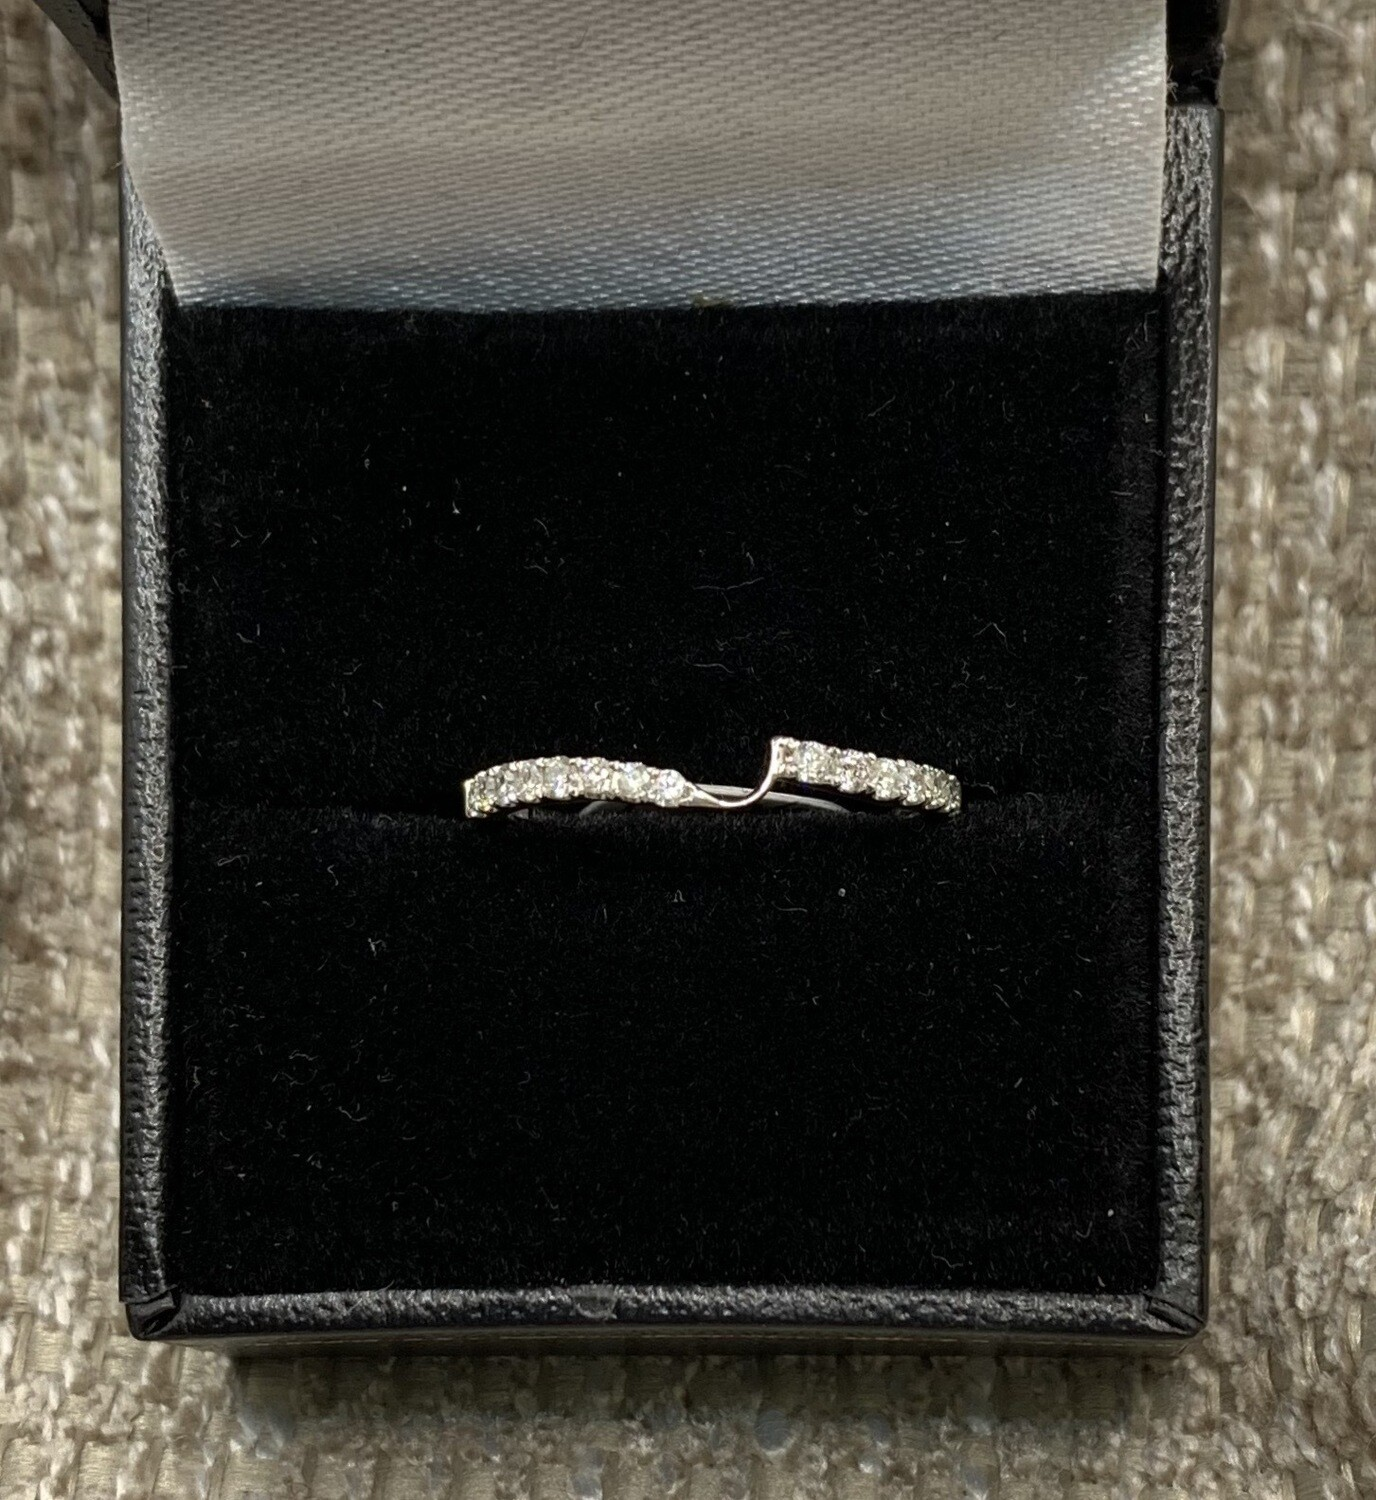 Diamond Notched Wedding Band 25 pts. total weight set in 14K White Gold